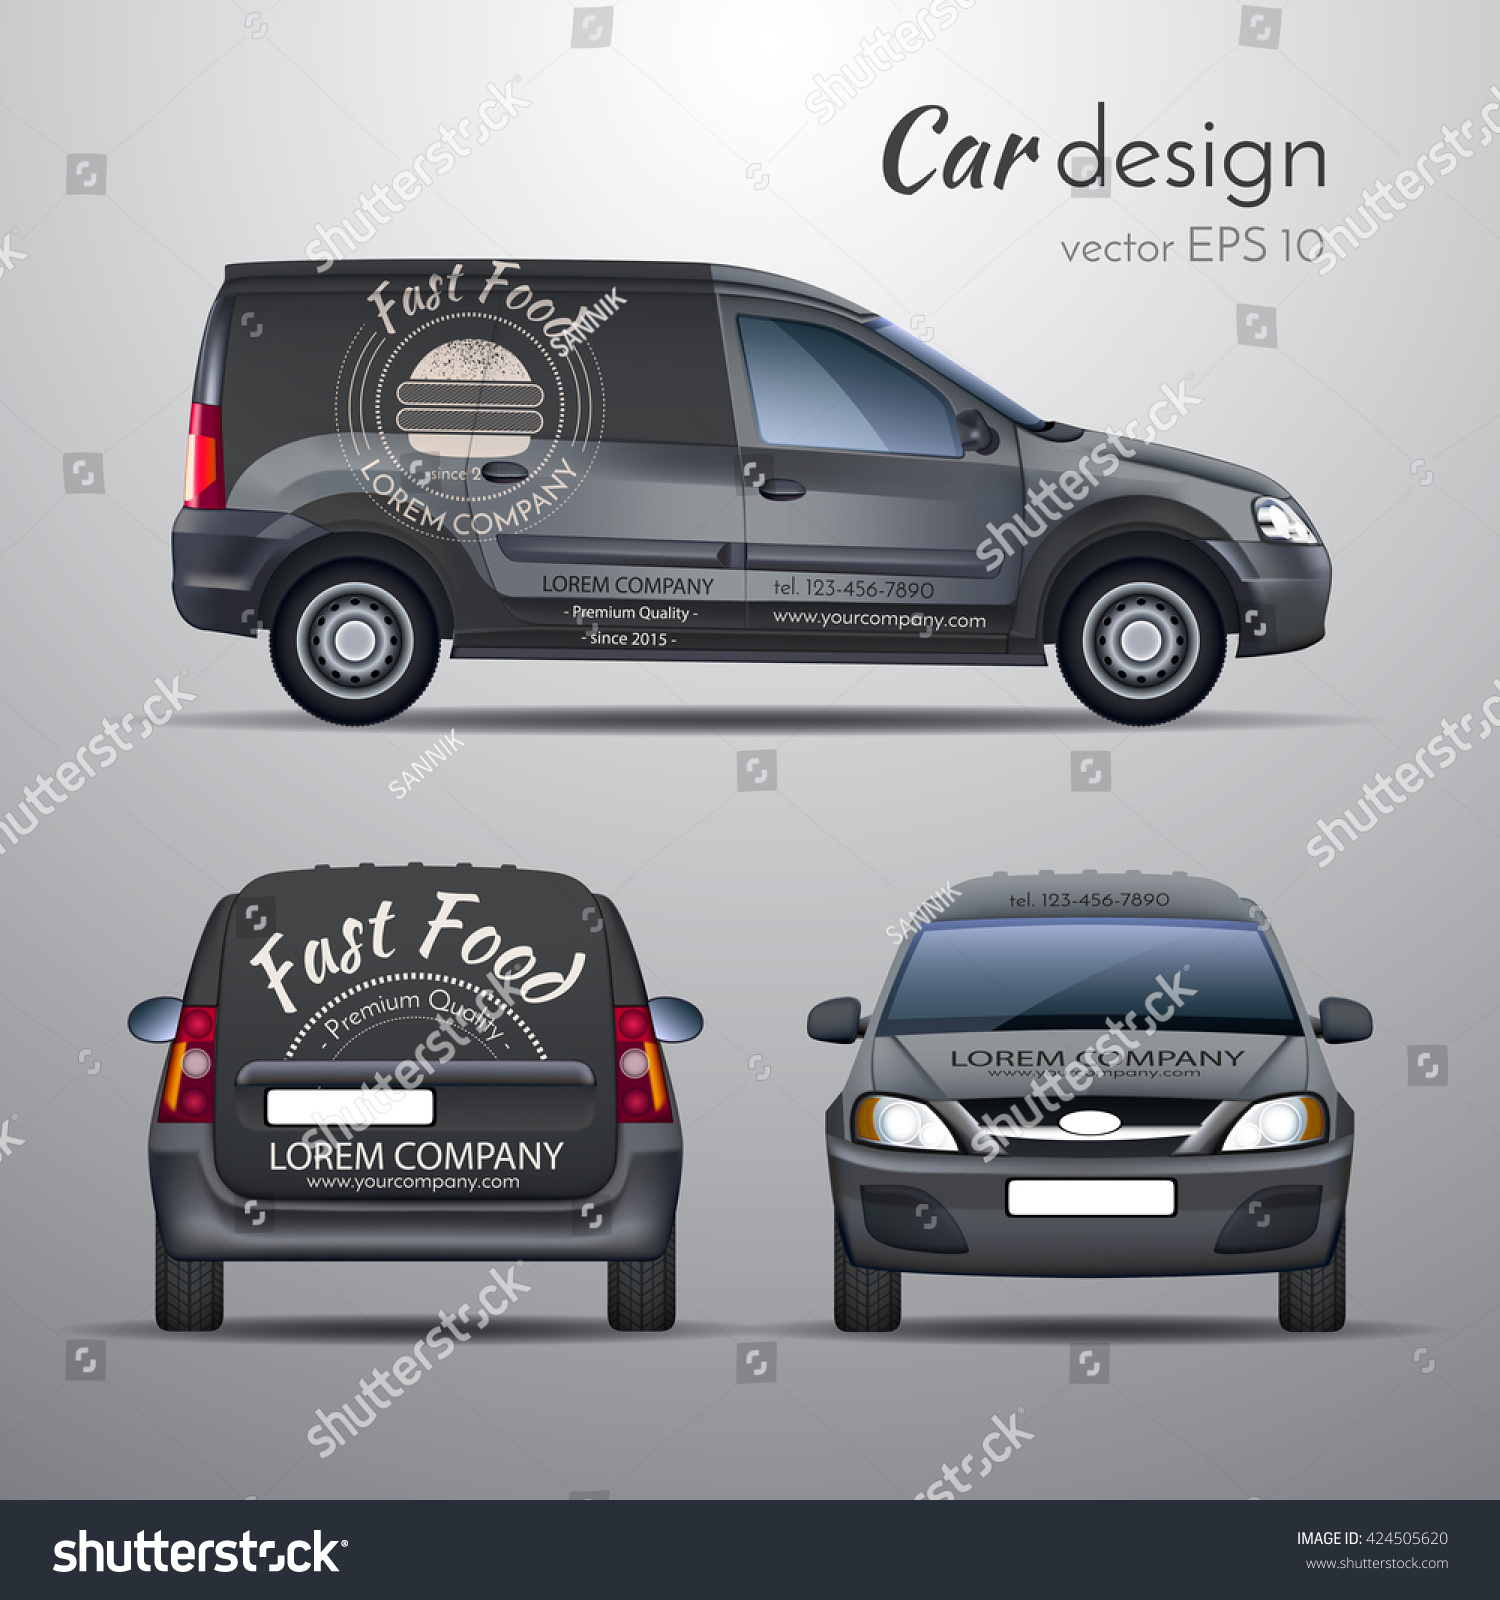 Car sticker design vector free - Realistic Vector Illustration Of A Template Design Car Stickers On The Car Food Delivery